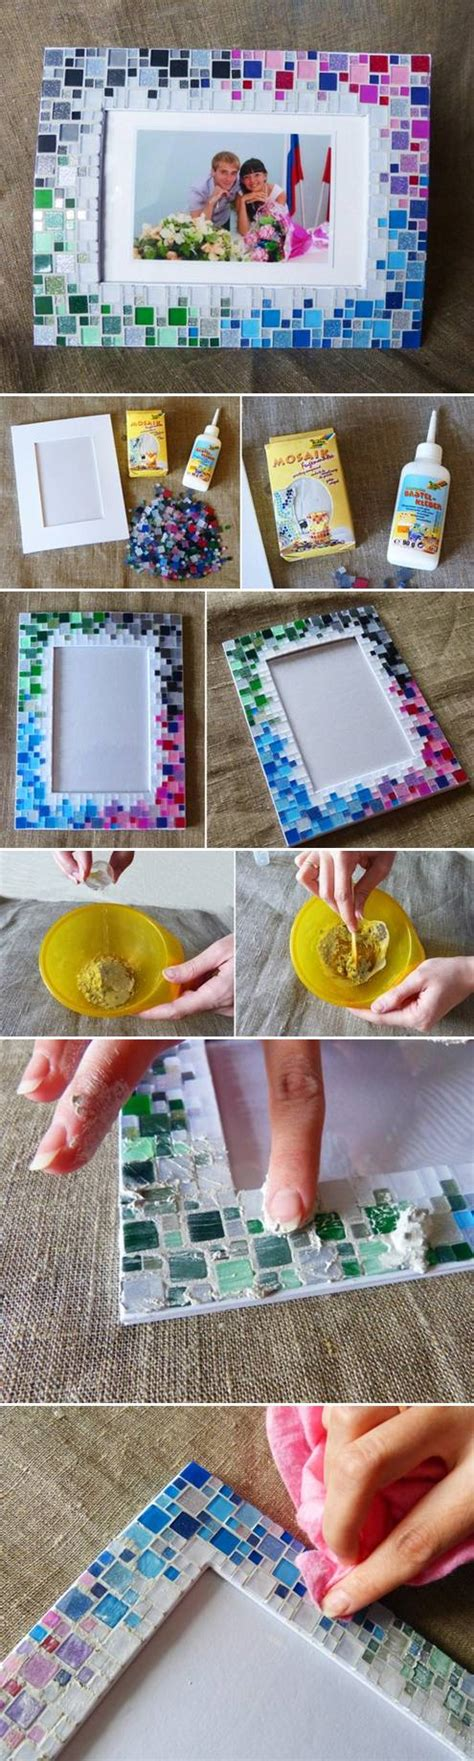 photo craft projects how to make colorful mosaic picture collage photoframe